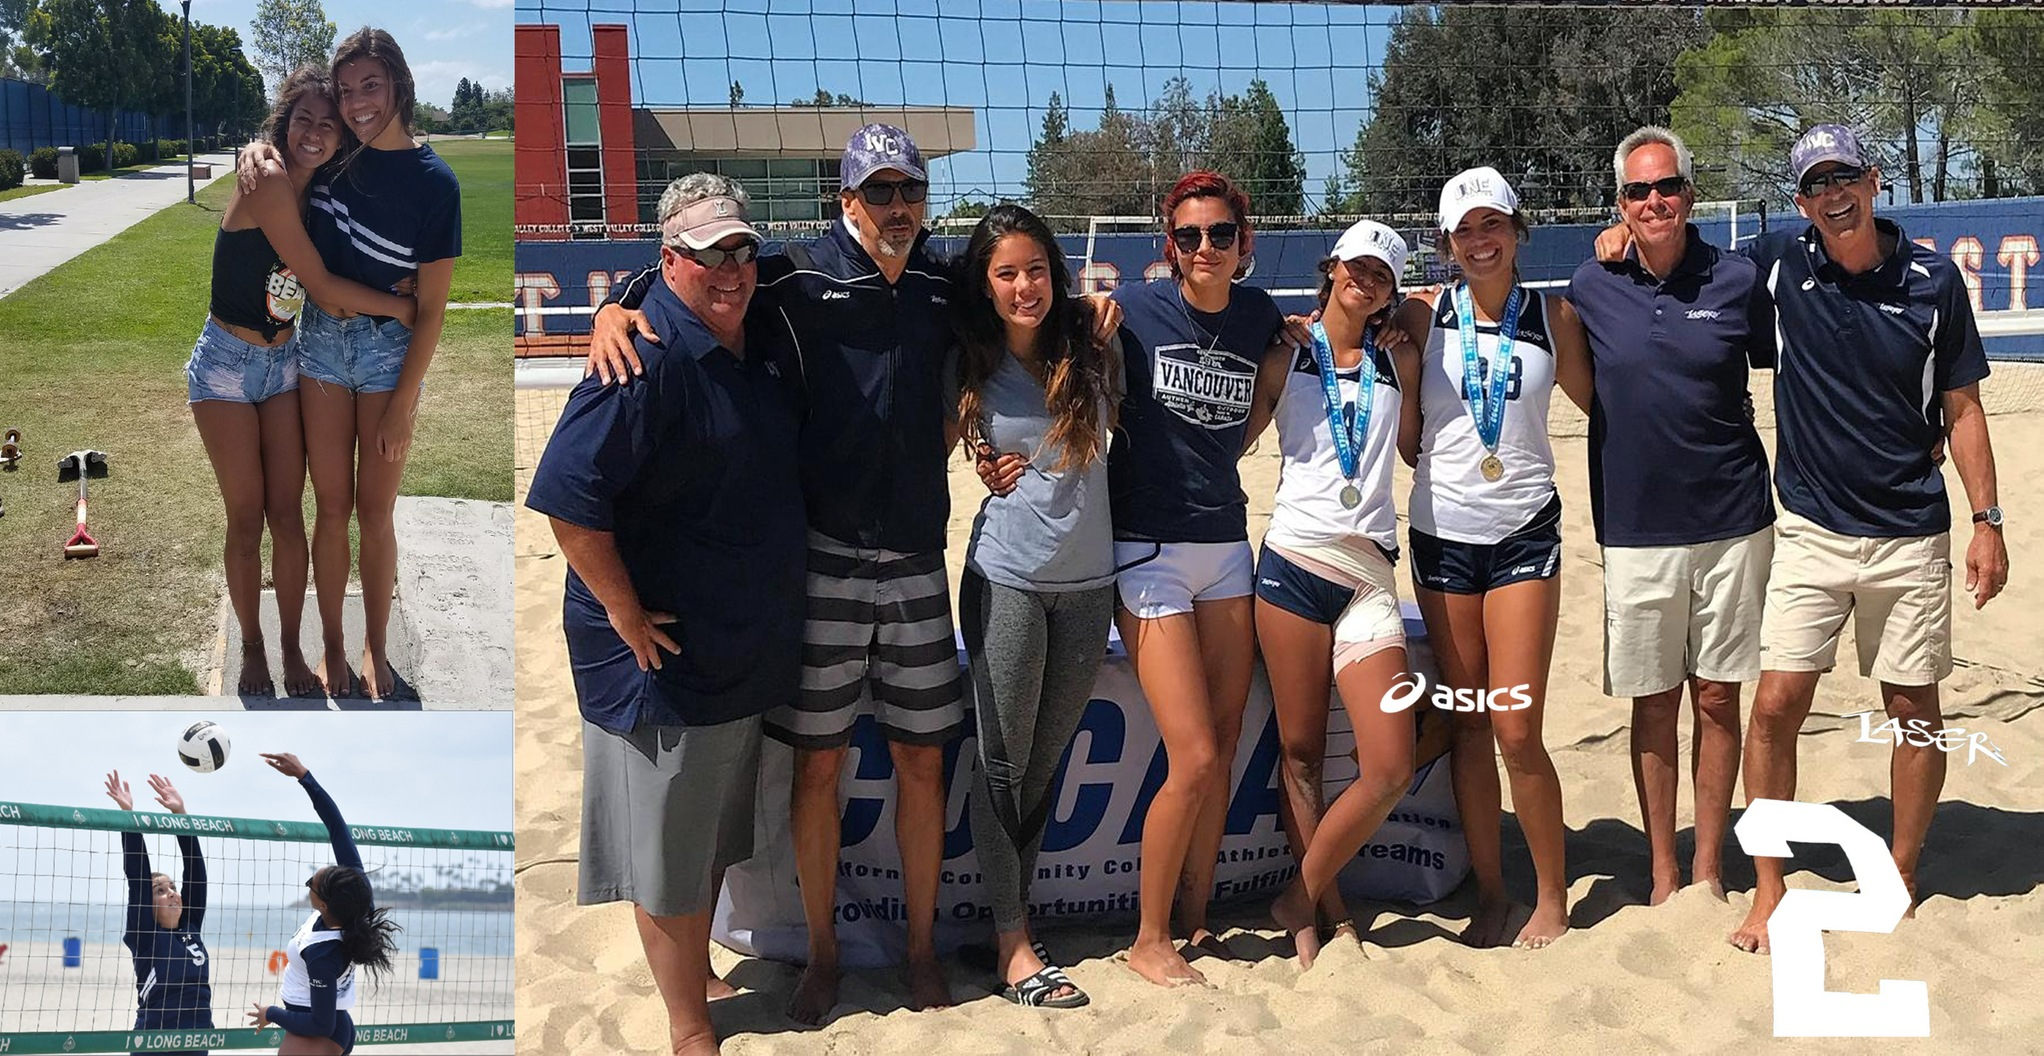 No. 2 Story of the Year - Women's beach volleyball champions